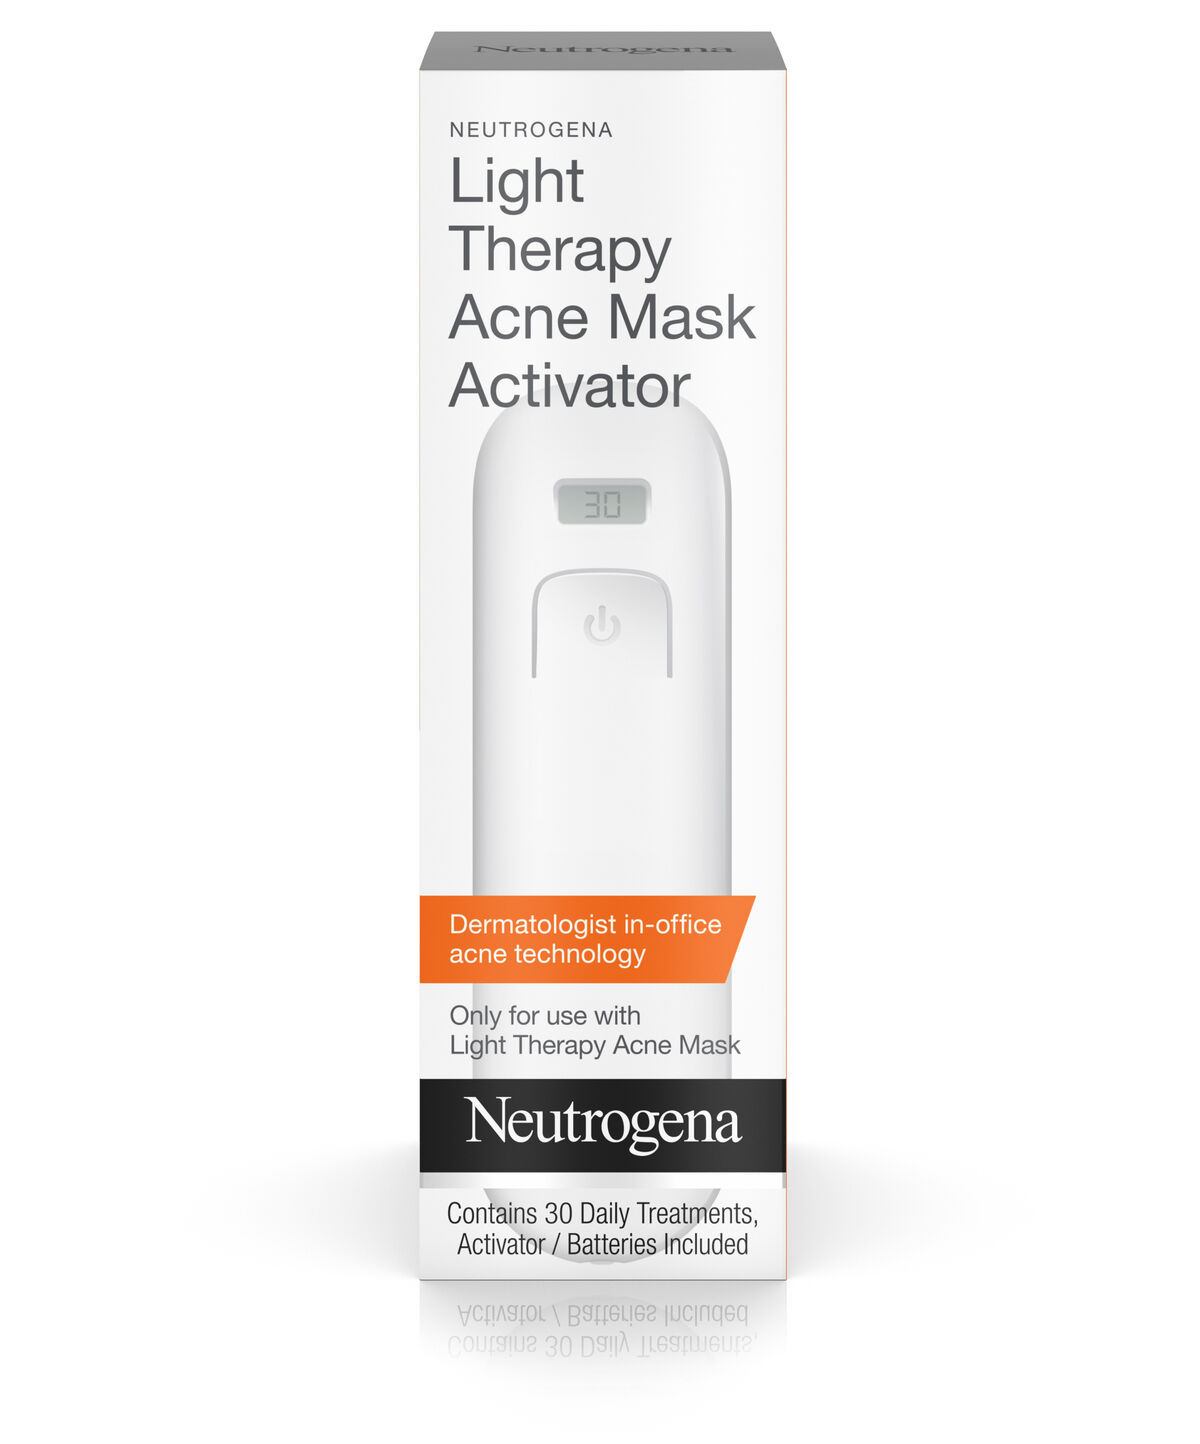 Light Therapy Acne Mask Activator